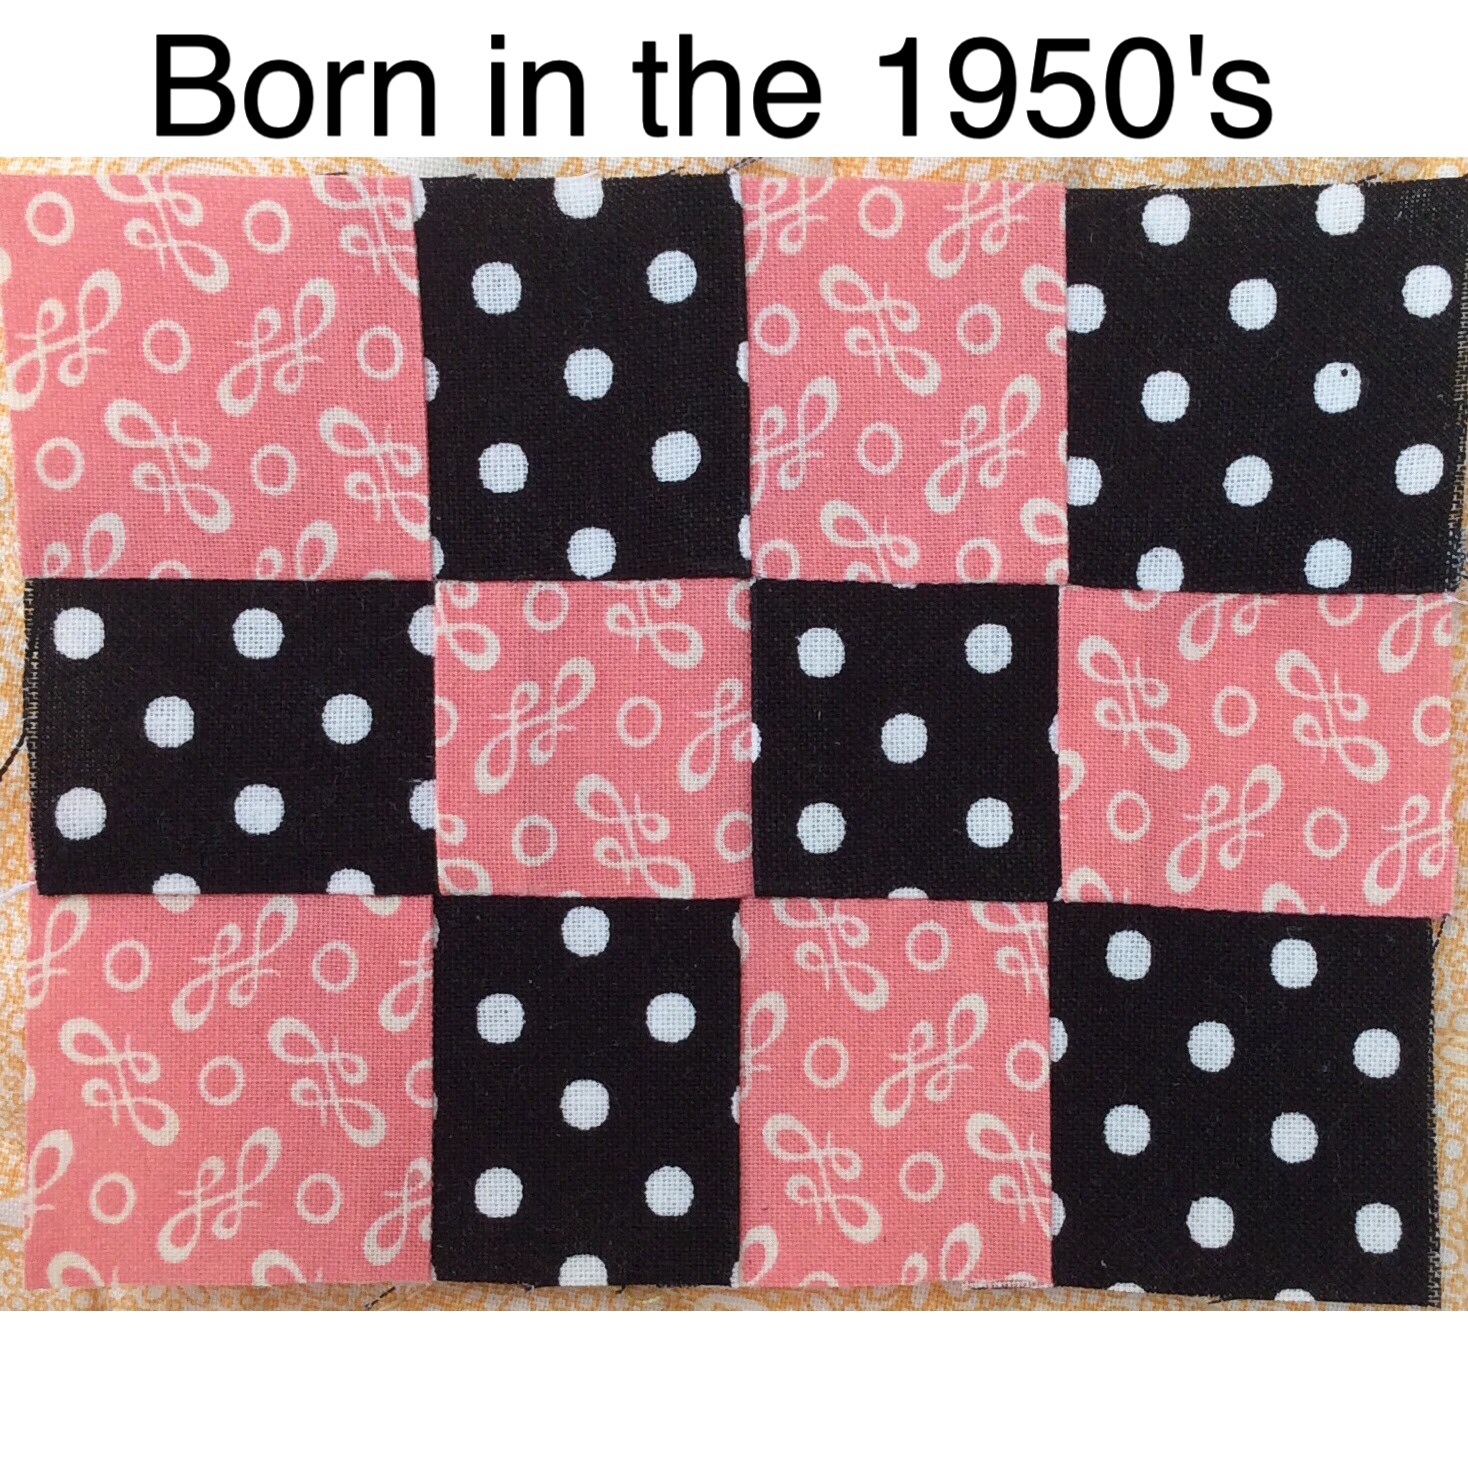 "Born in the 1950""s"